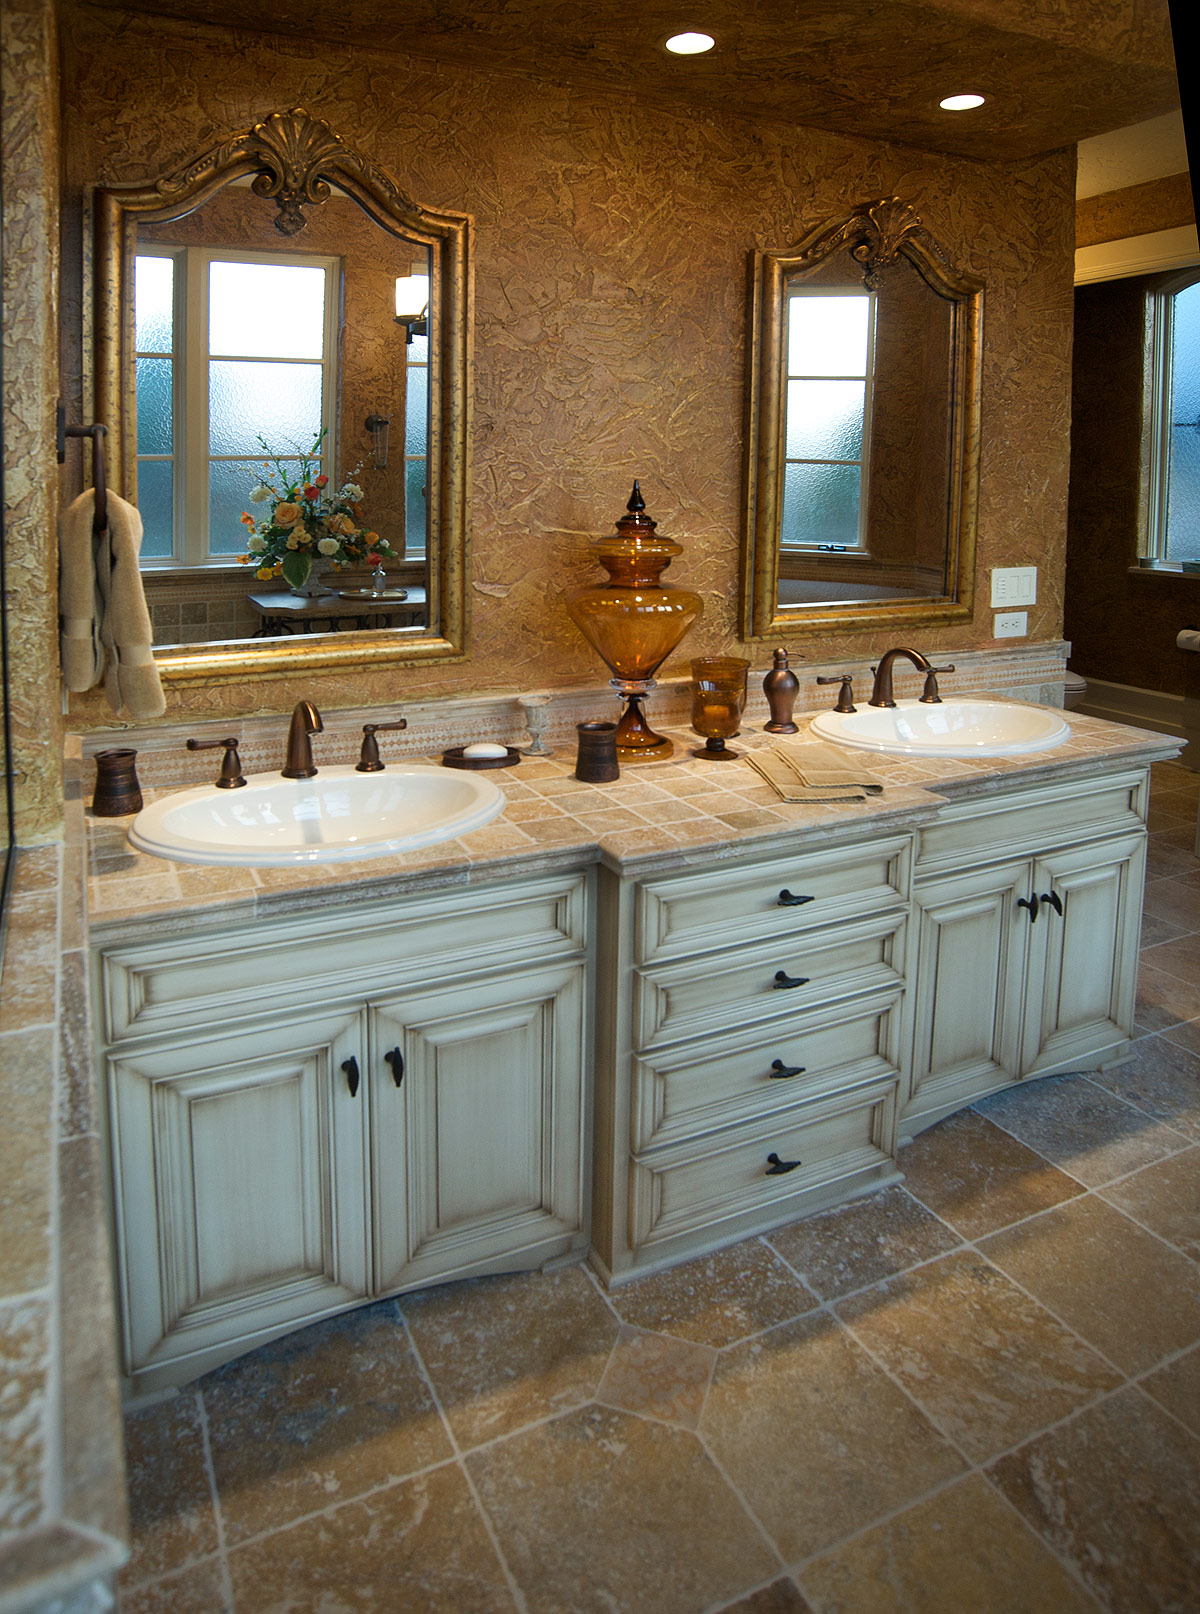 Mullet cabinet traditional vanity bathroom - Pictures of vanities in bathrooms ...